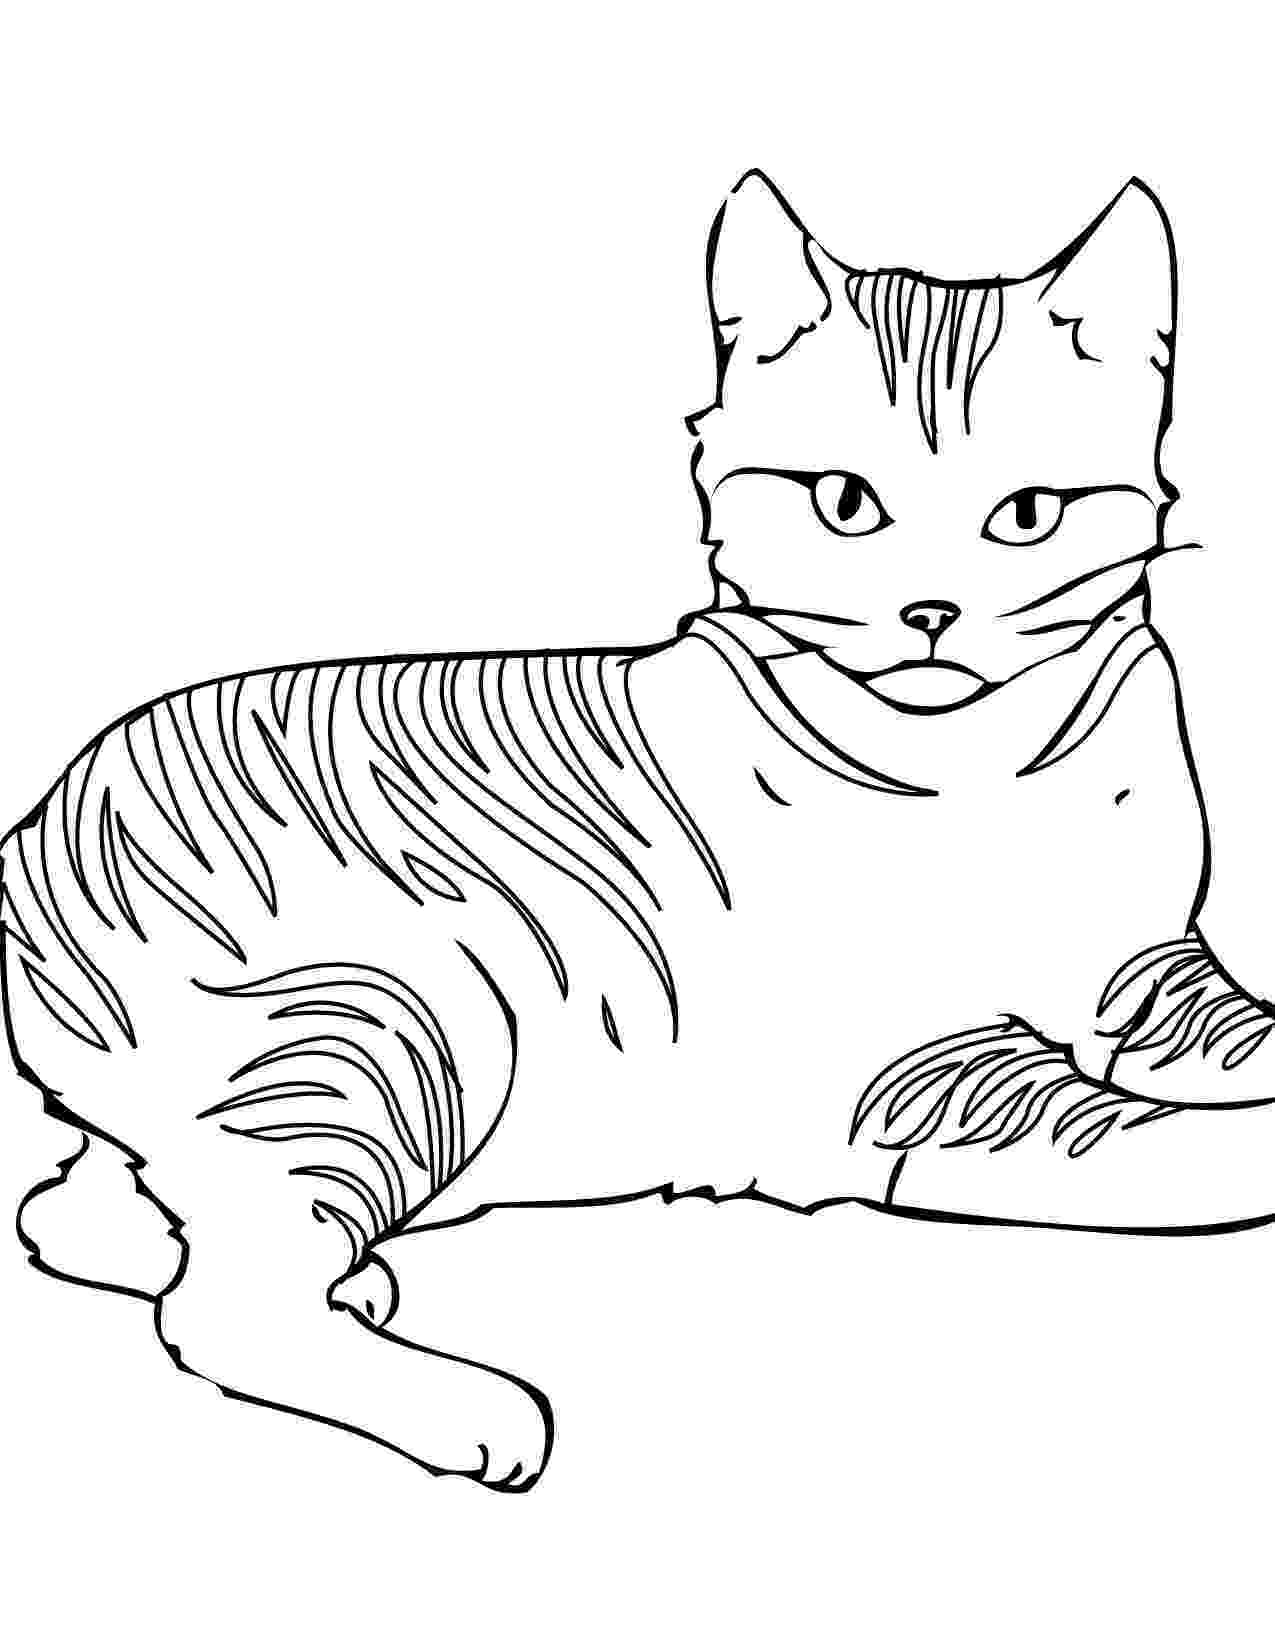 coloring cat pages free printable cat coloring pages for kids cool2bkids pages coloring cat